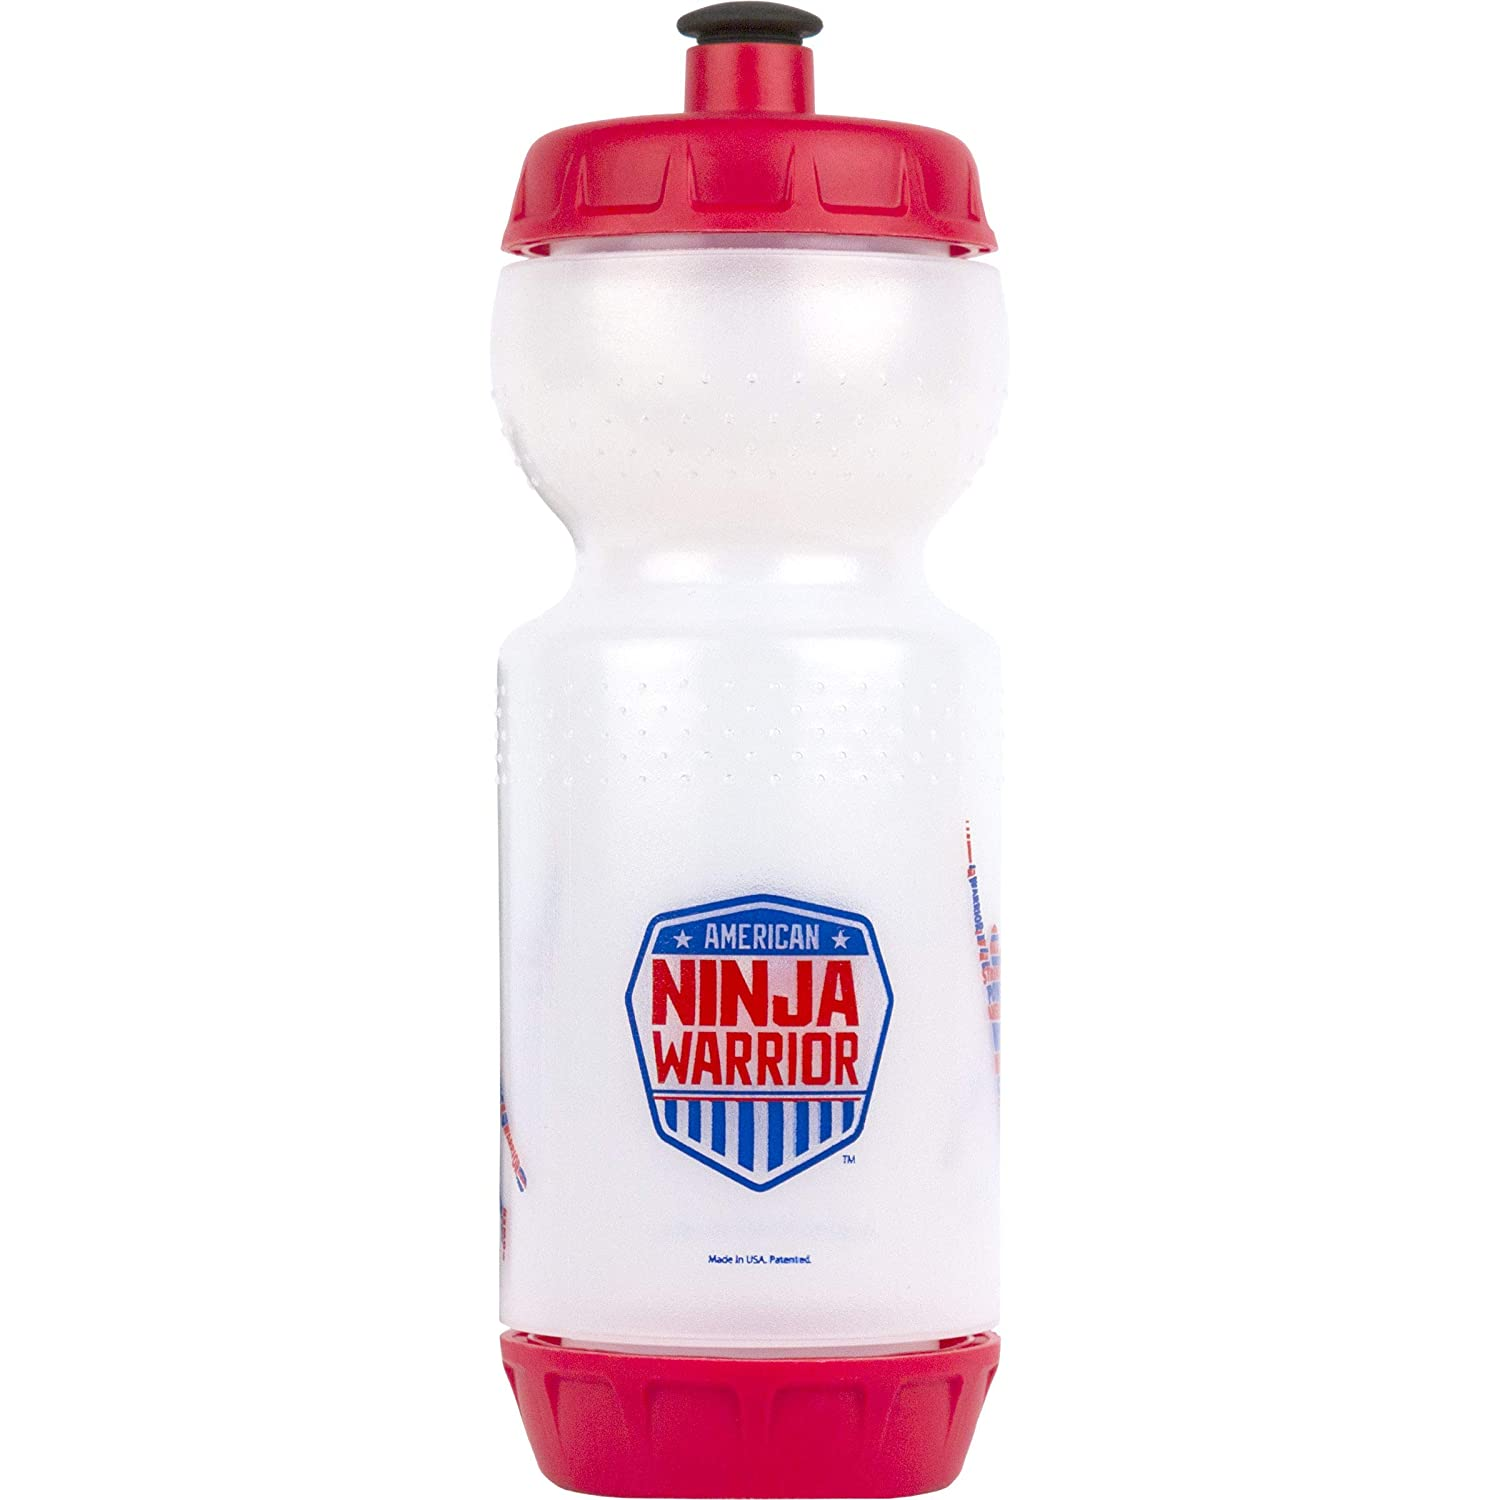 Perfect for On-The-Go Drinks American Ninja Warrior Ninja Water Bottle Great Gift for ANW Fans